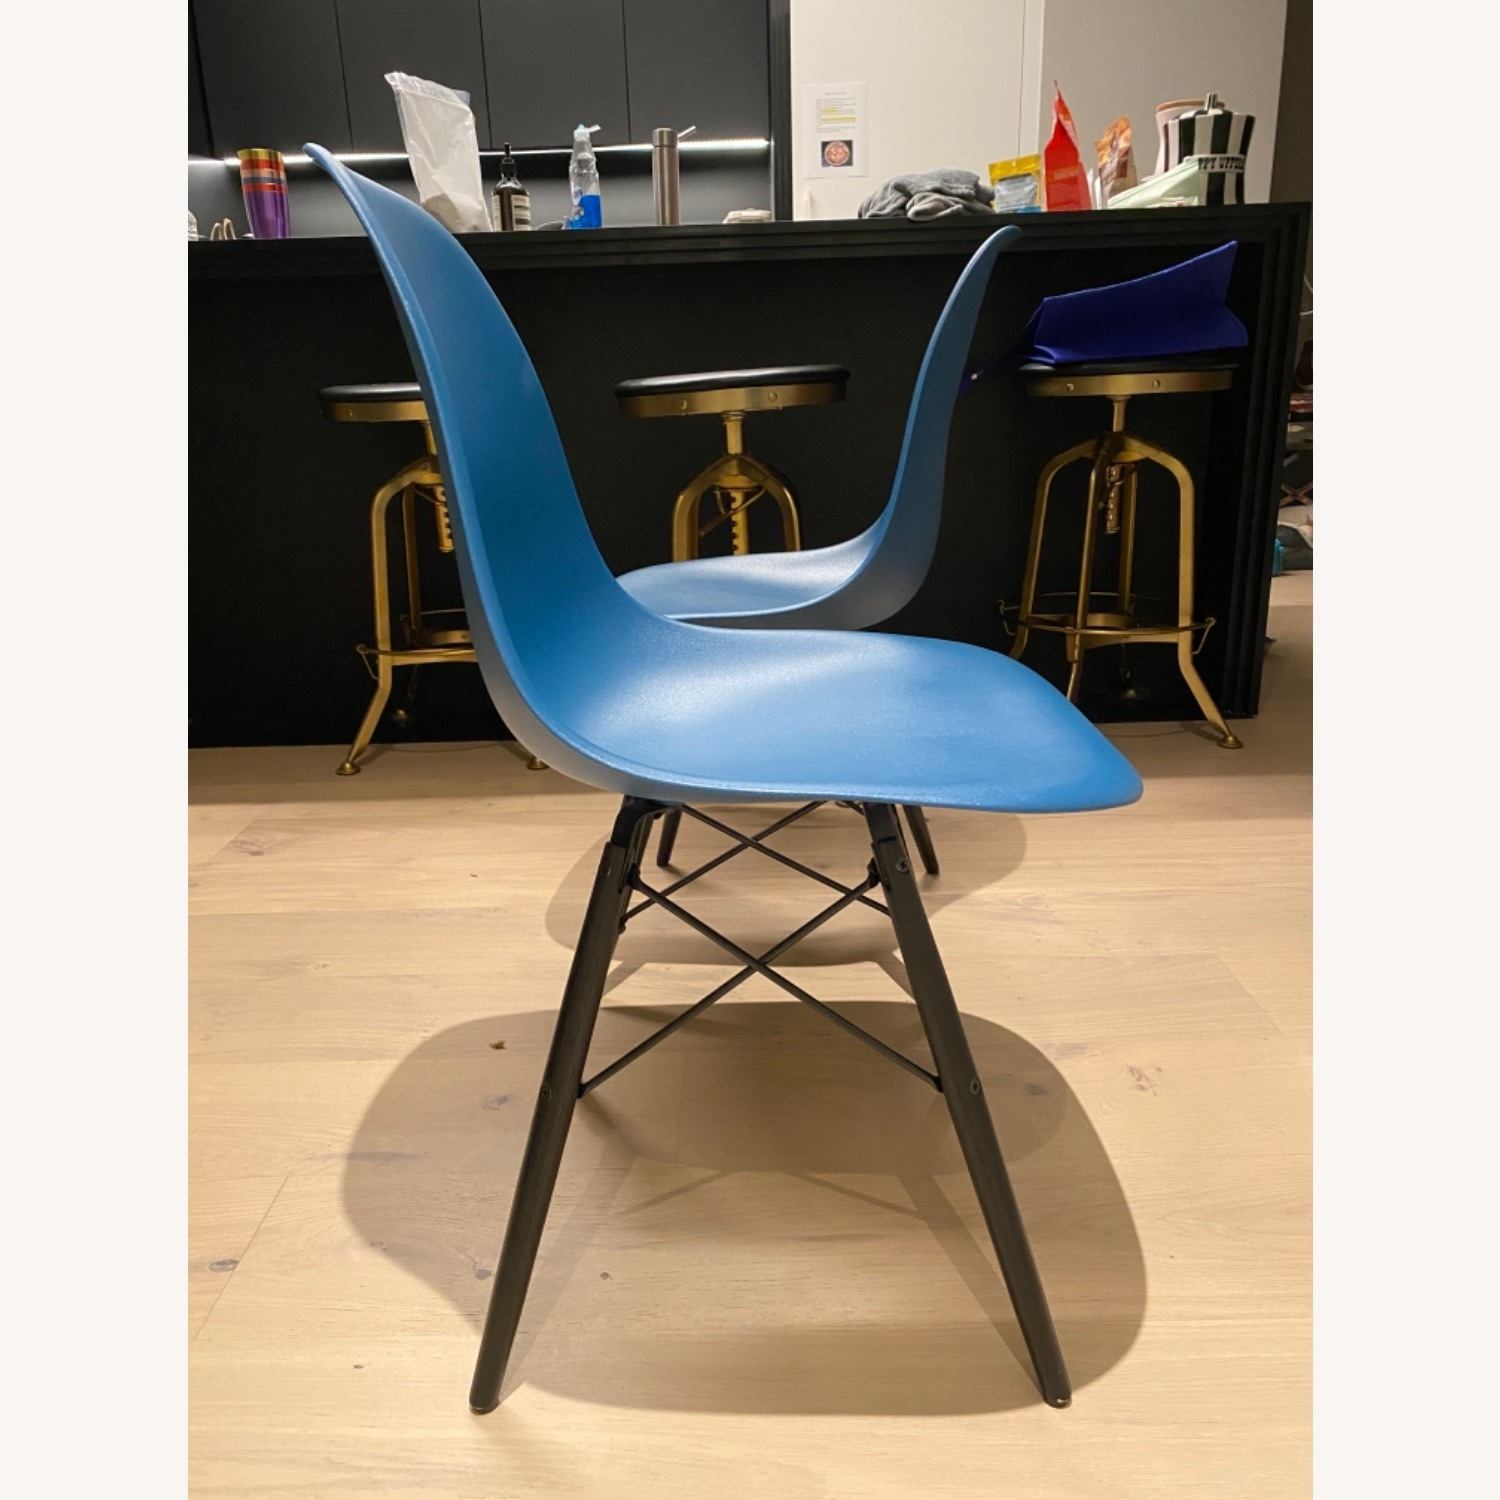 4 x Herman Miller Eames Molded Plastic Side Chair - image-13